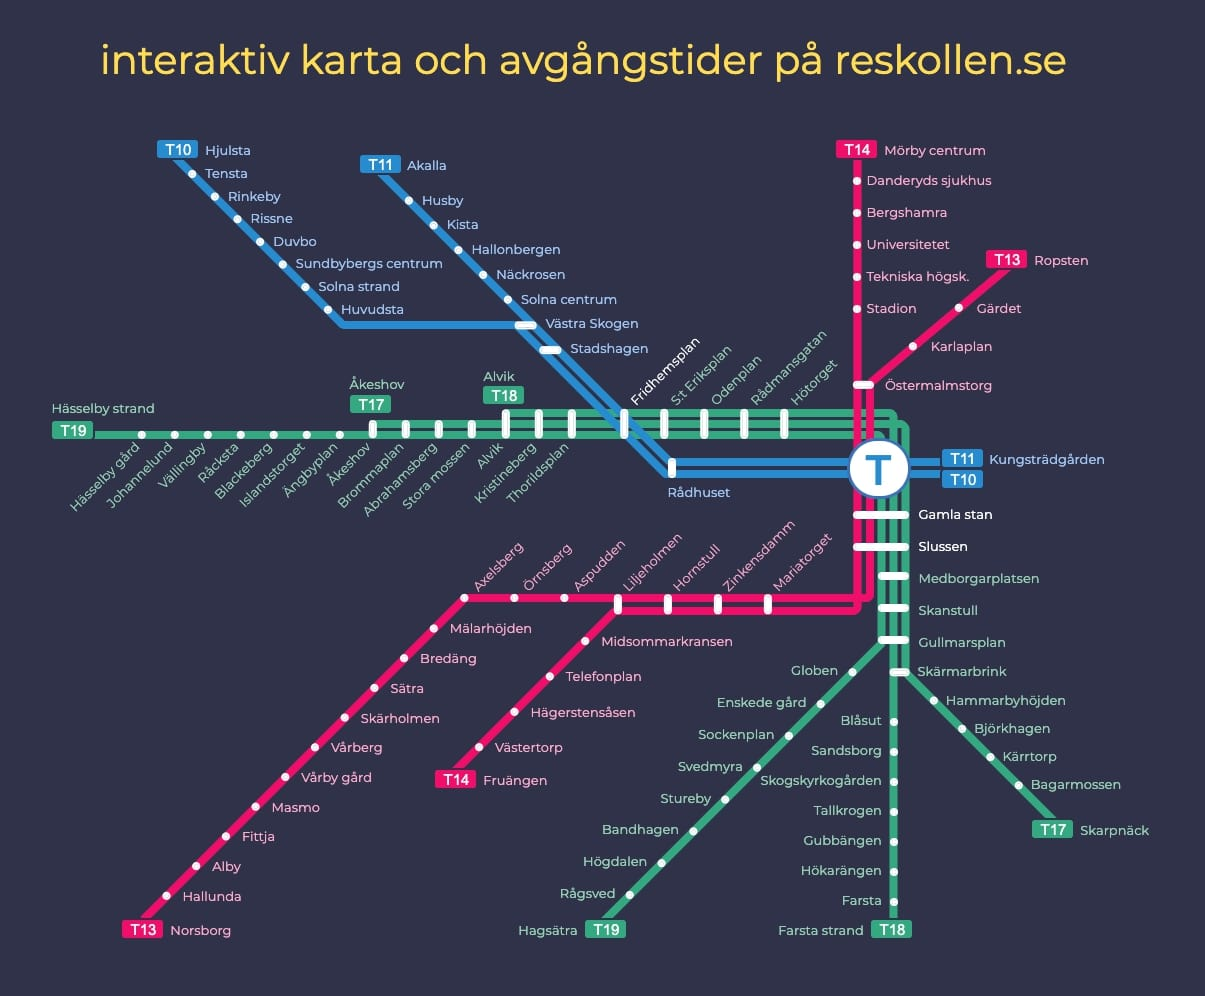 subway göteborg karta SCAPE 2018 | RISE Research Institutes of Sweden subway göteborg karta